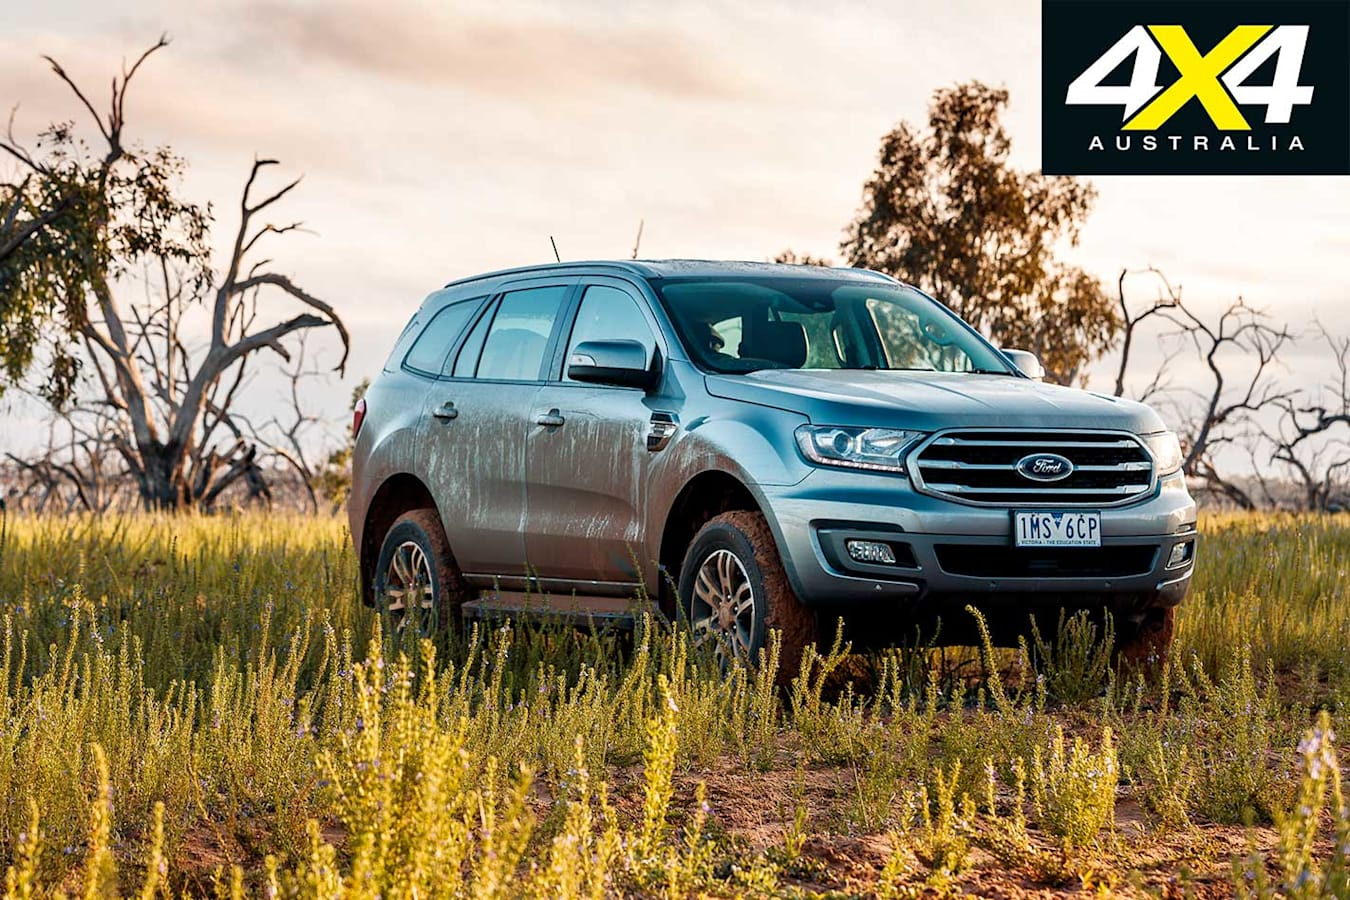 2019 4 X 4 Of The Year Ford Everest Trend Summary Jpg